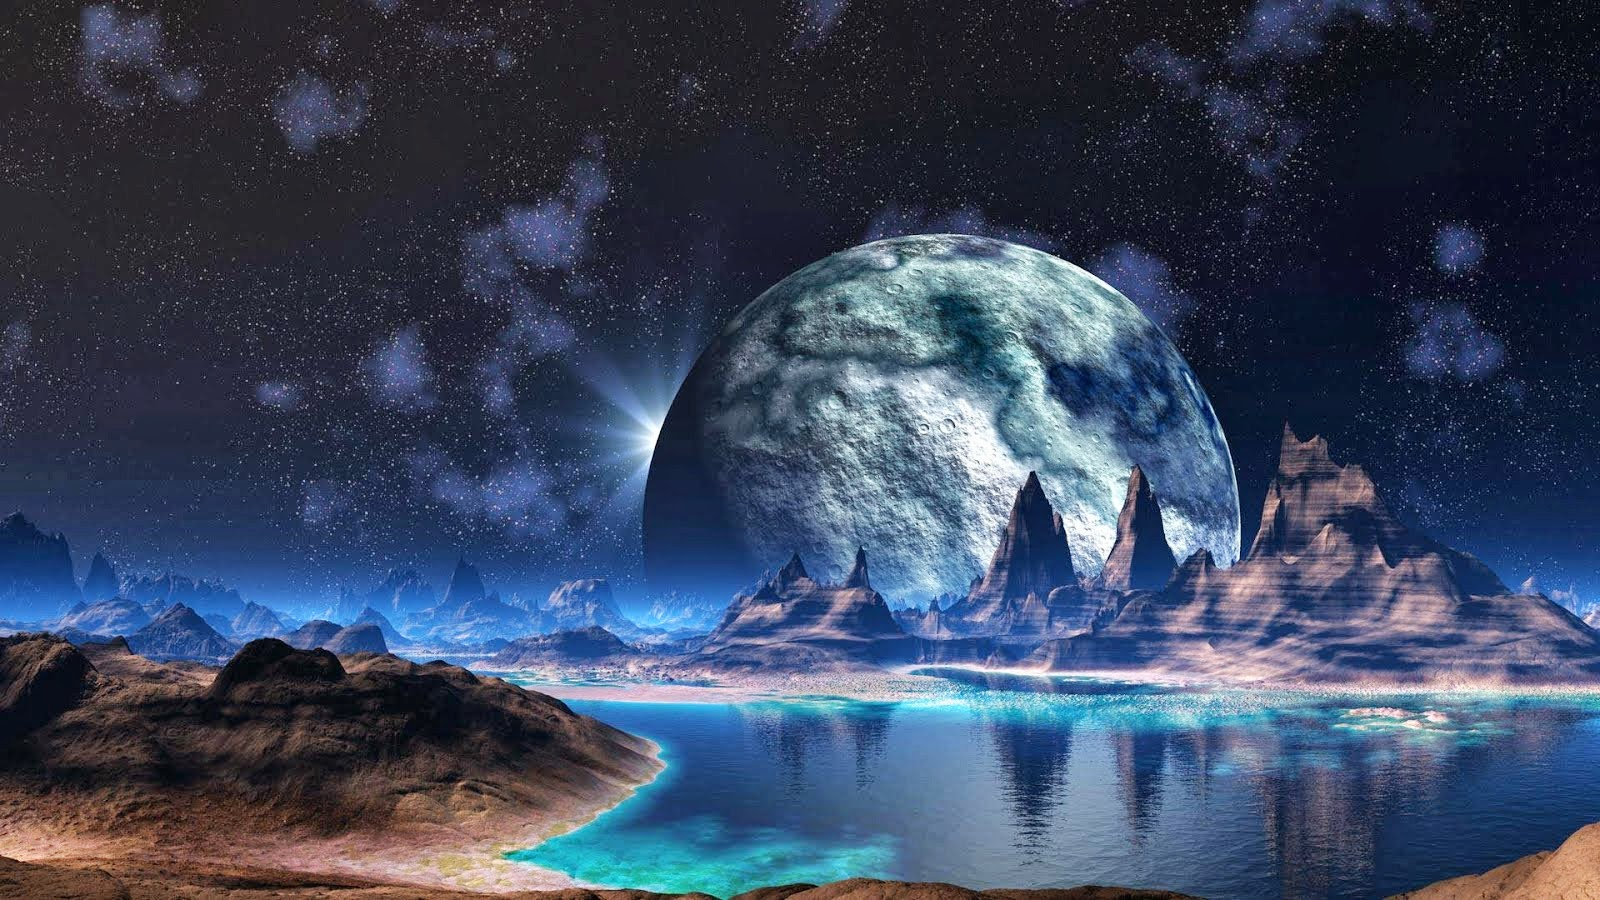 High Definition Backgrounds, HD Wallpapers, HD Backgrounds for Desktop ...